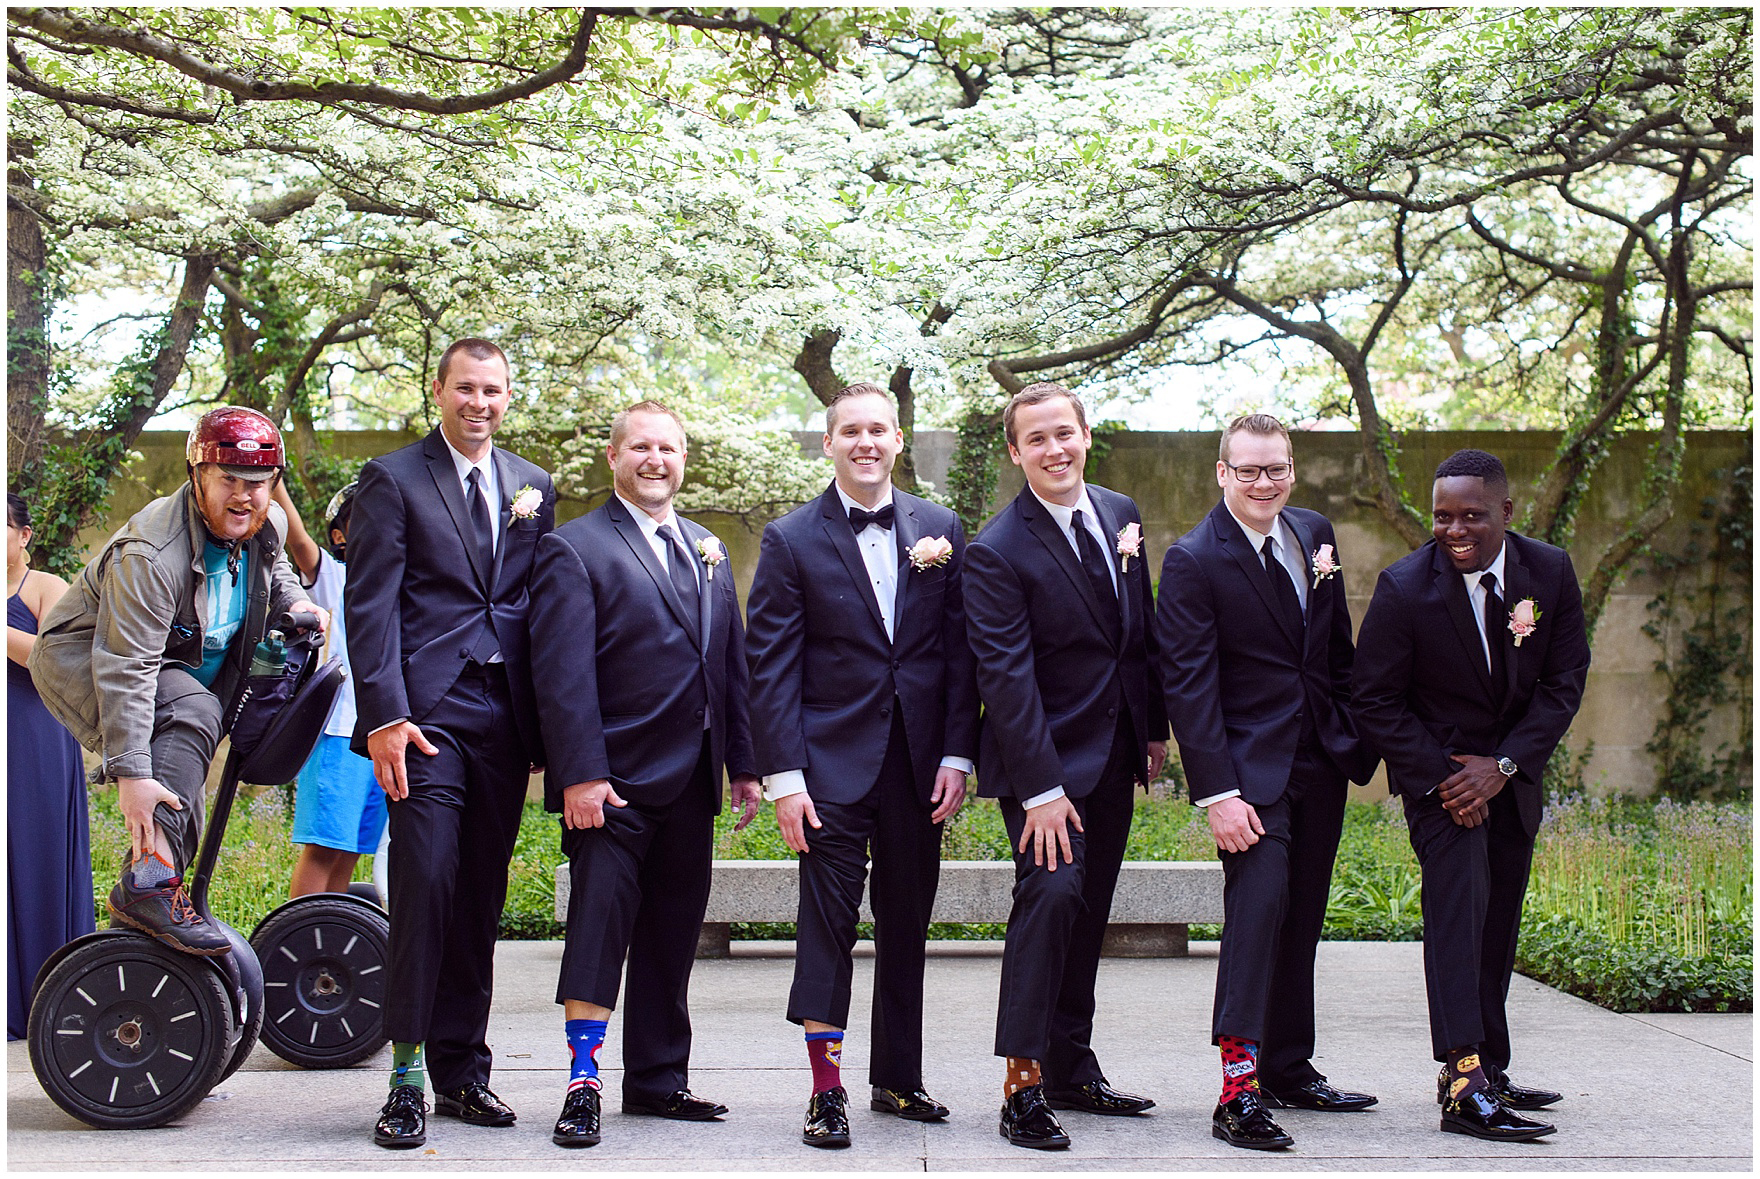 Groomsmen get photobombed by a tourist on a segway while posing in the South Gardens of the Art Institute of Chicago before a University Club of Chicago wedding.